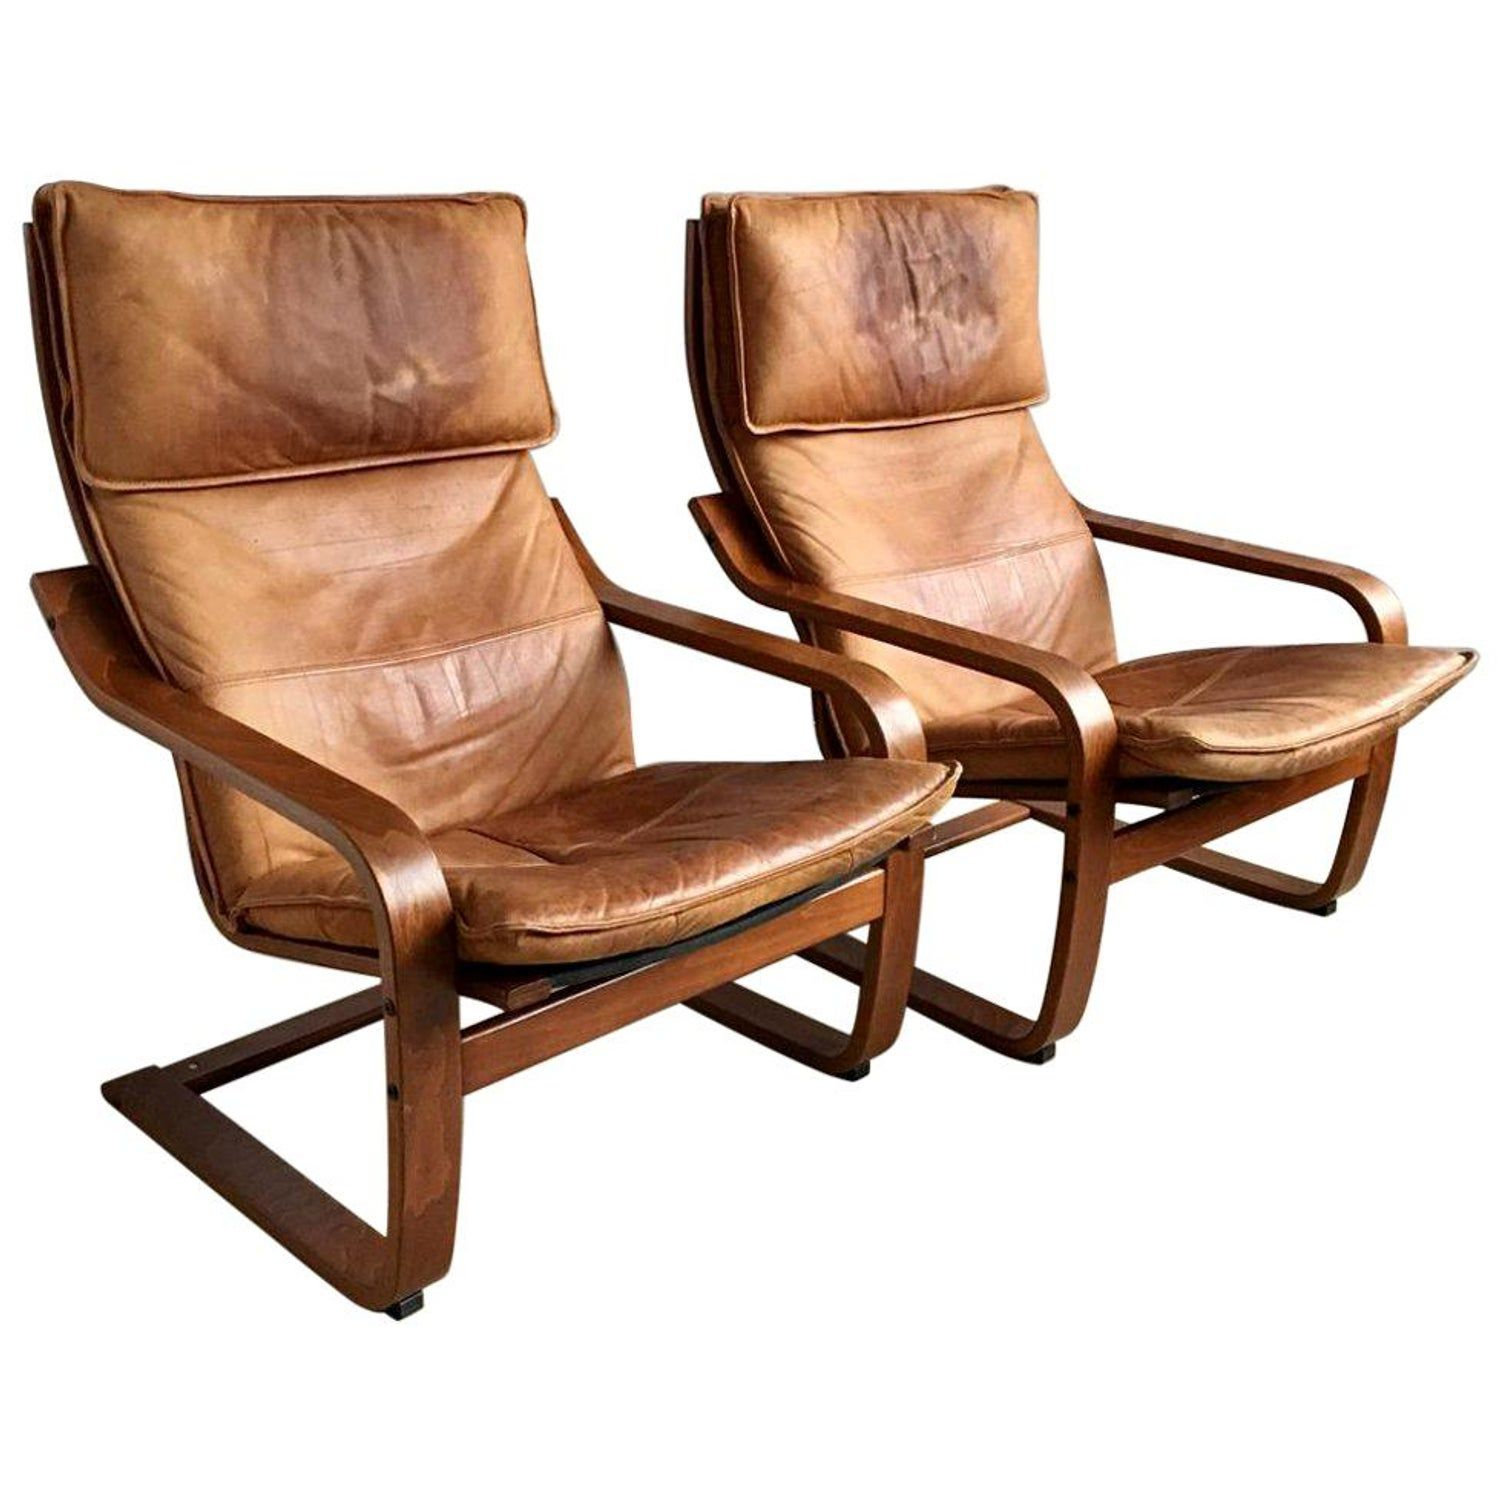 Set Of Two Vintage Cognas Leather Poang Chairs By Noboru Nakamura